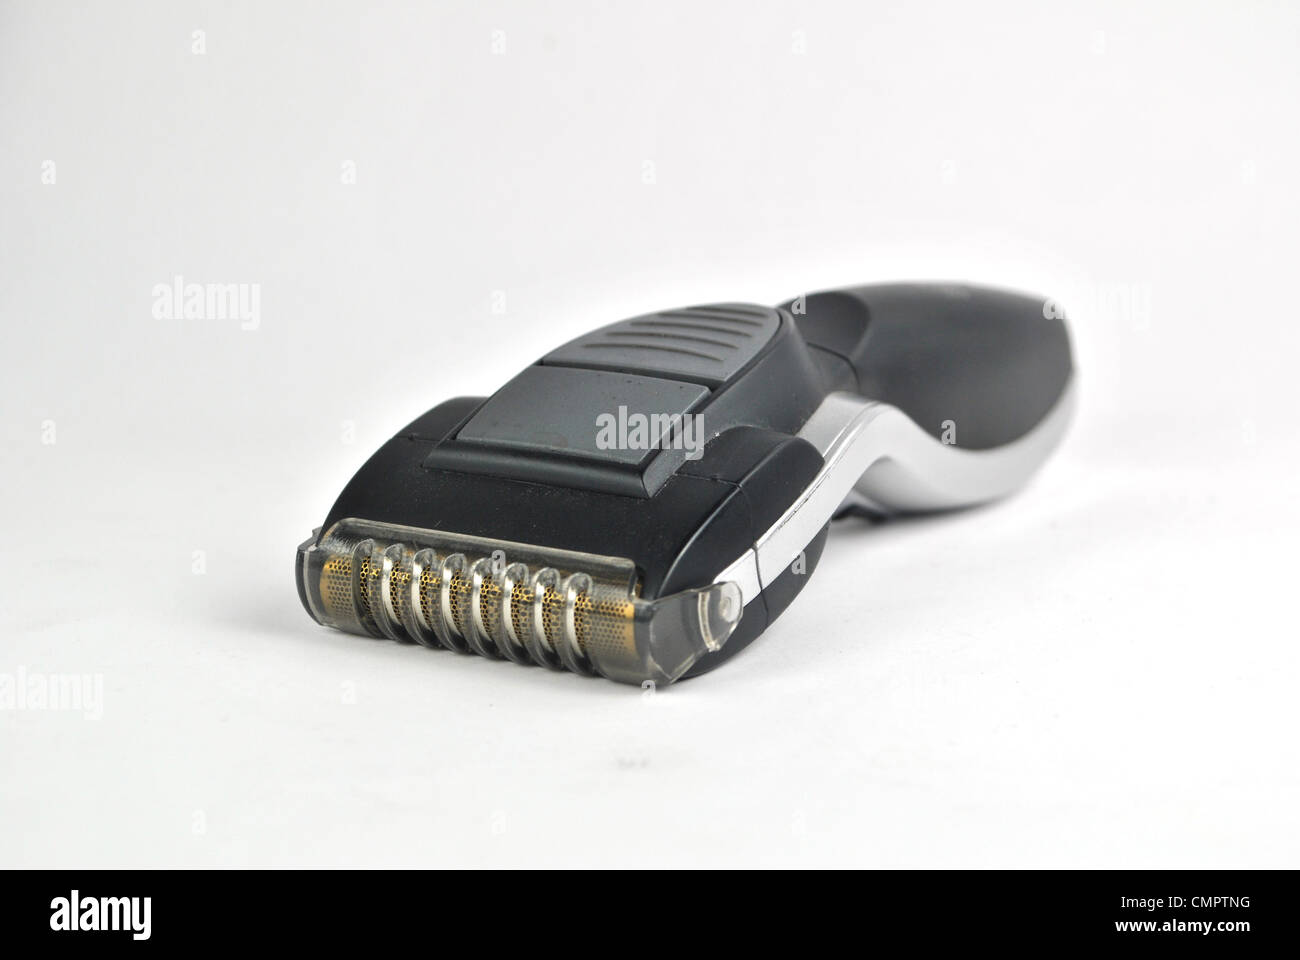 electric trimmer - Stock Image